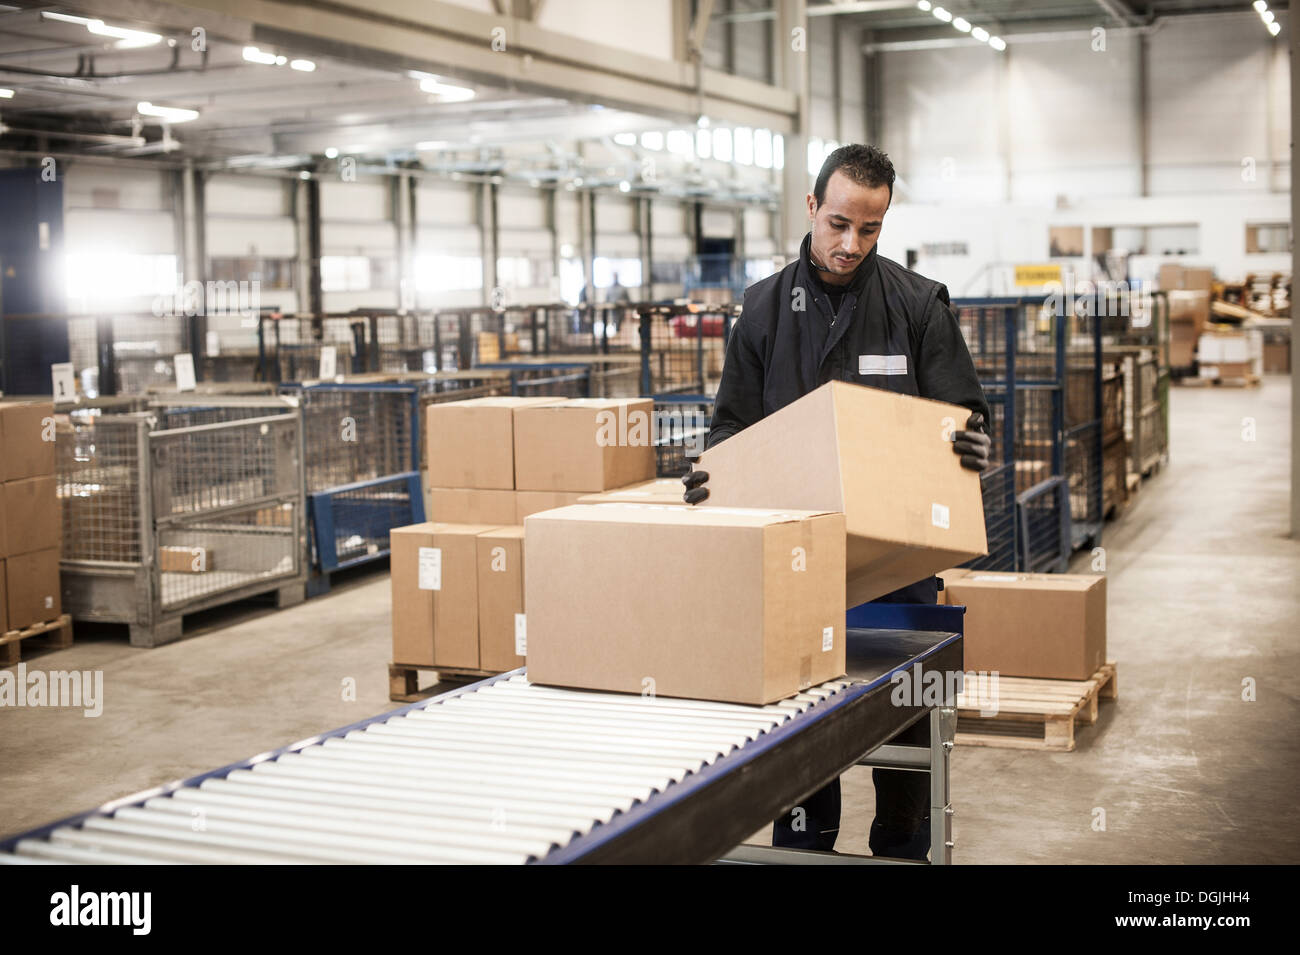 Male warehouse worker checking cardboard box from conveyor belt male warehouse worker checking cardboard box from conveyor belt sciox Choice Image